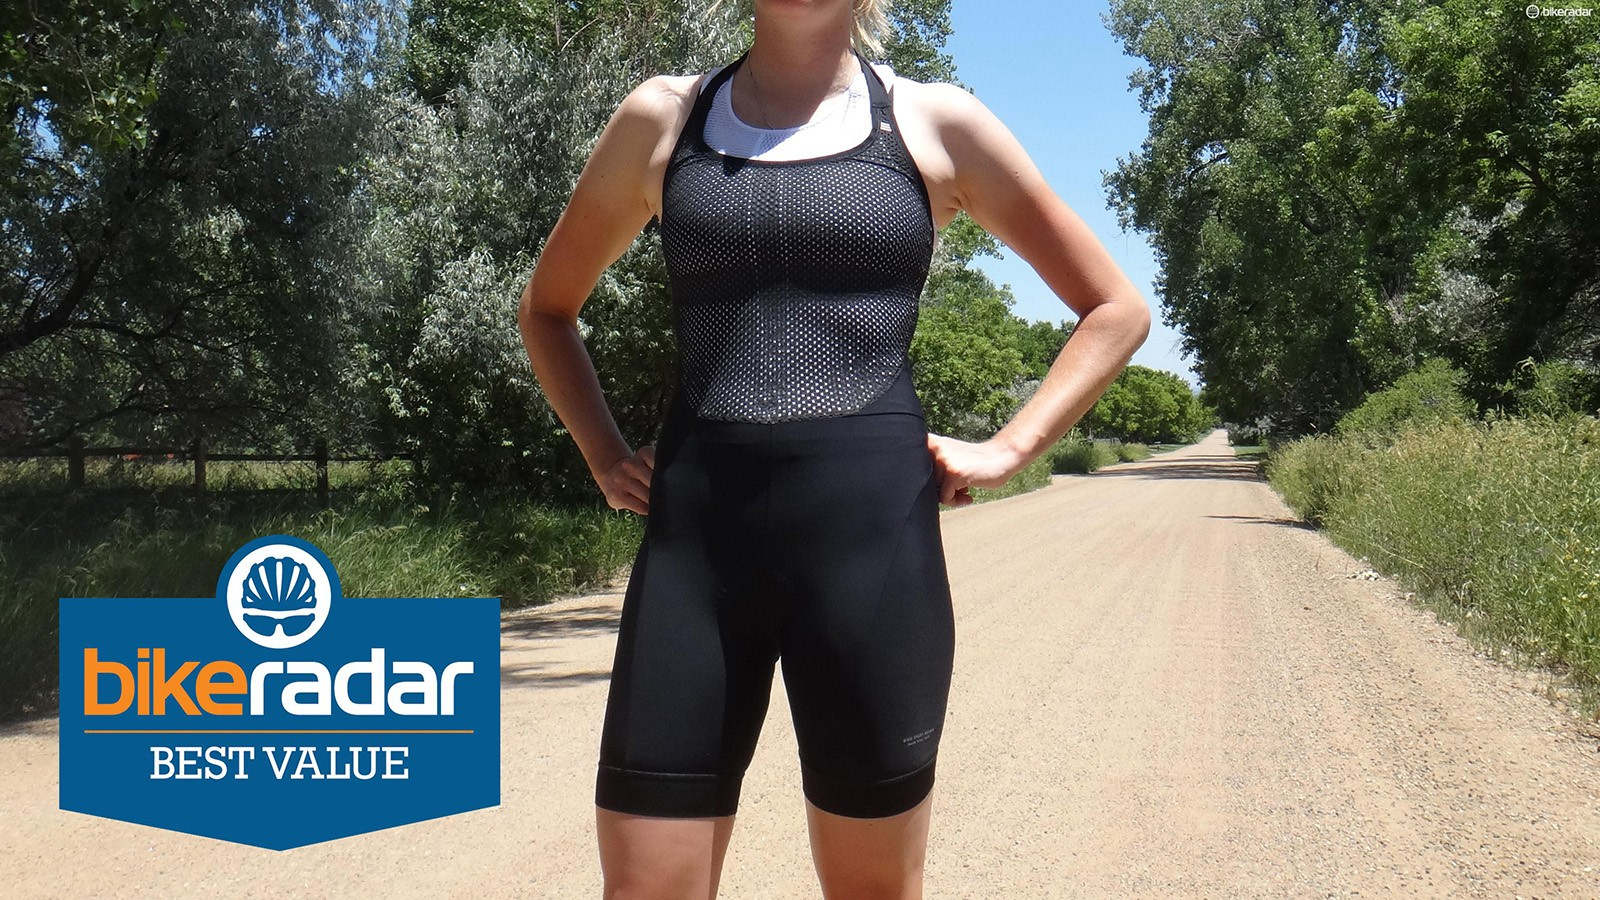 Giro's Halter Bibs include a soft built-in base layer for added comfort and support